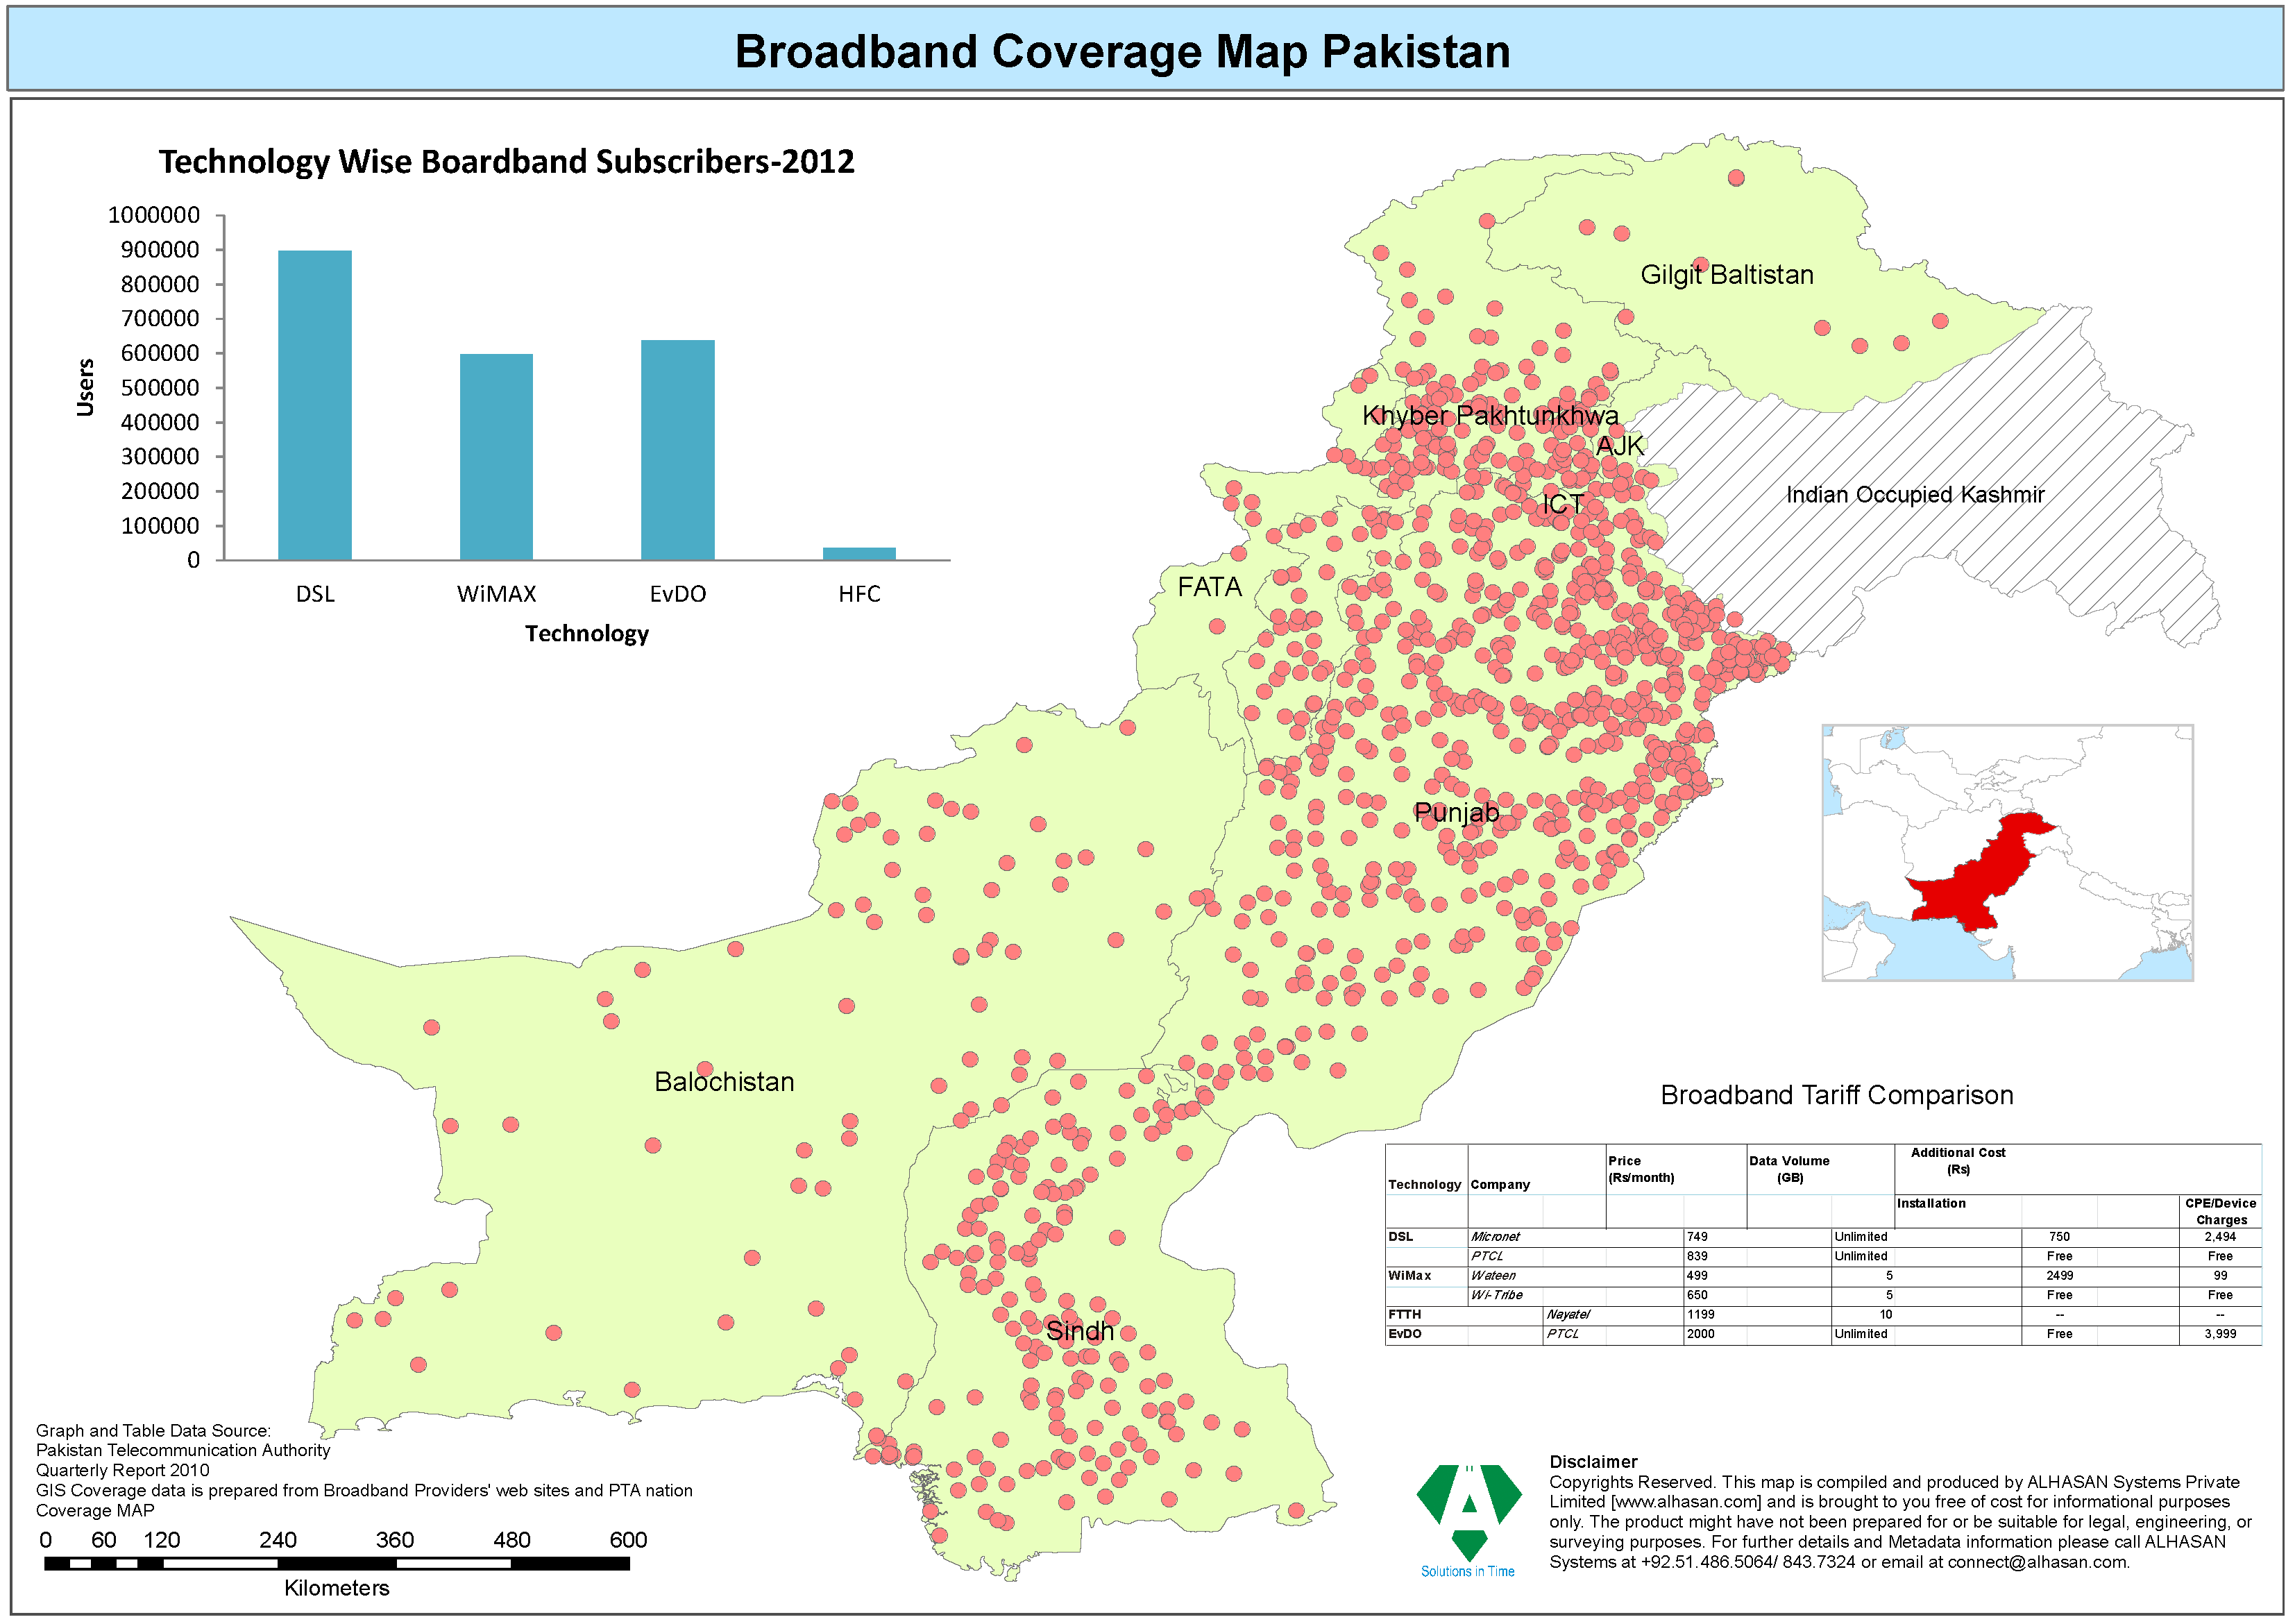 Pakistan Broadband Coverage Alhasan Systems Private Limited